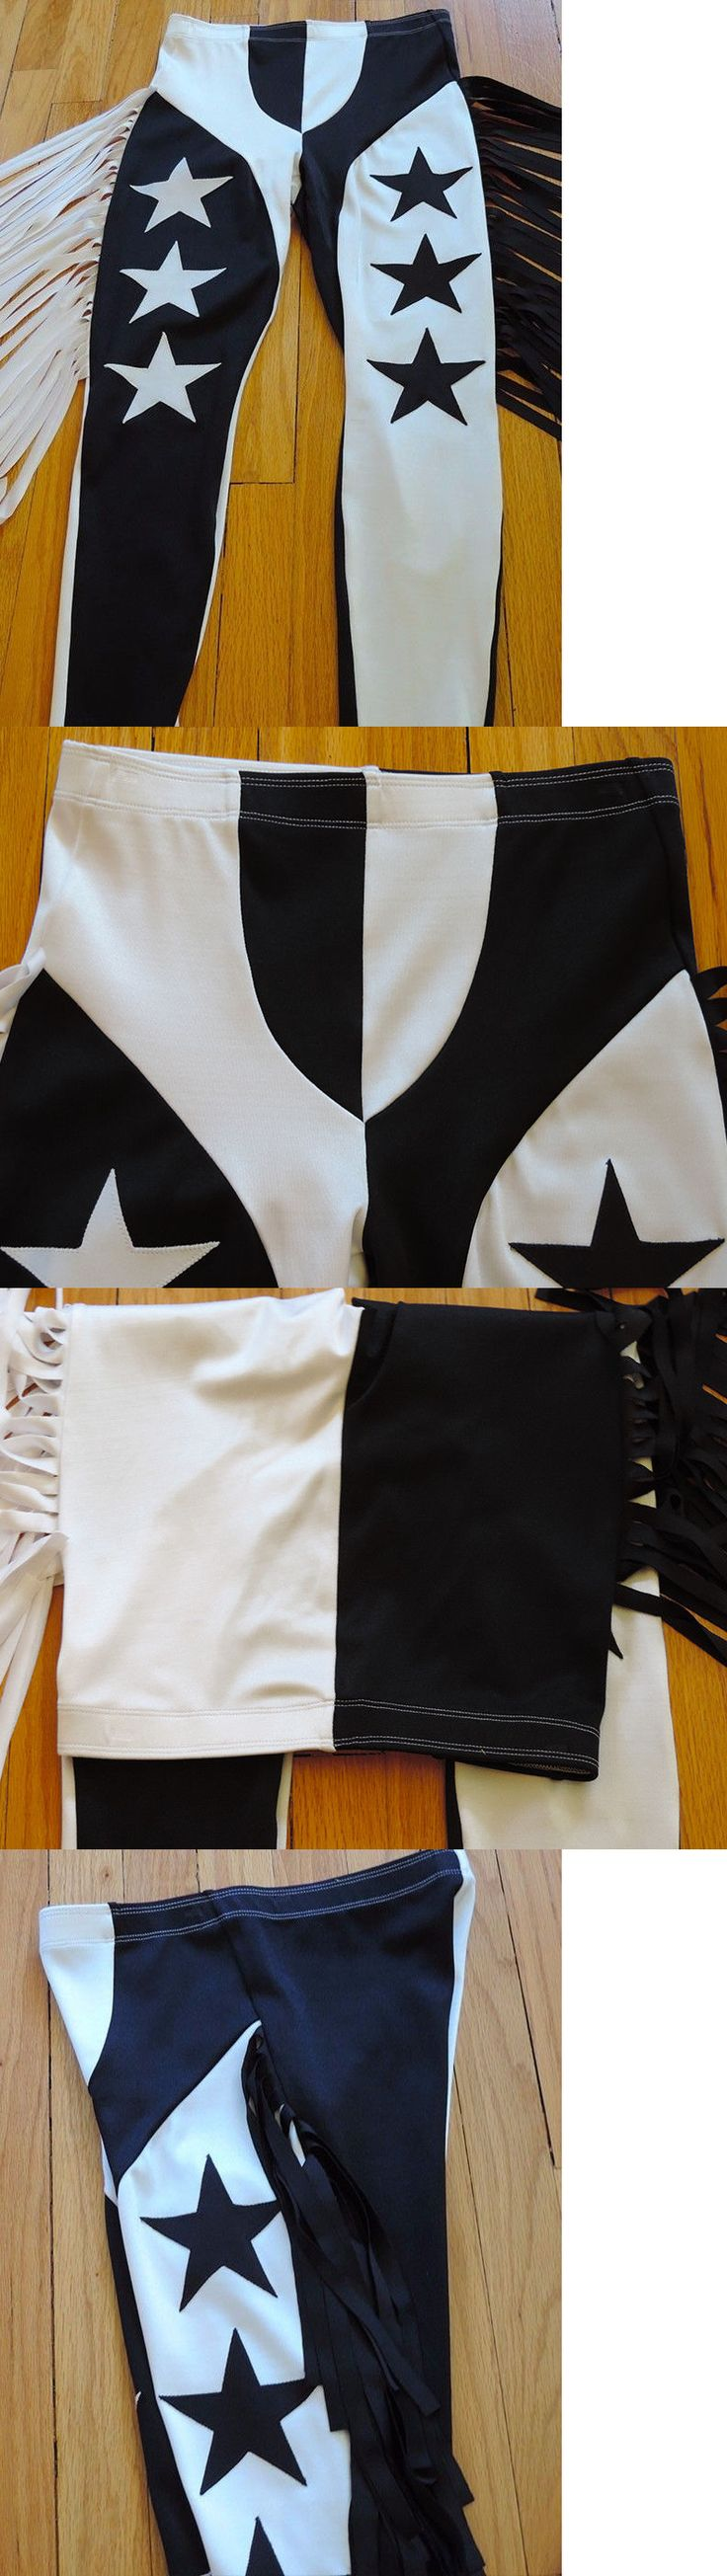 Clothing 79796: S Fringe Wrestling Tights Randy Savage Style Black White Star Cosplay Gear -> BUY IT NOW ONLY: $49.99 on eBay!